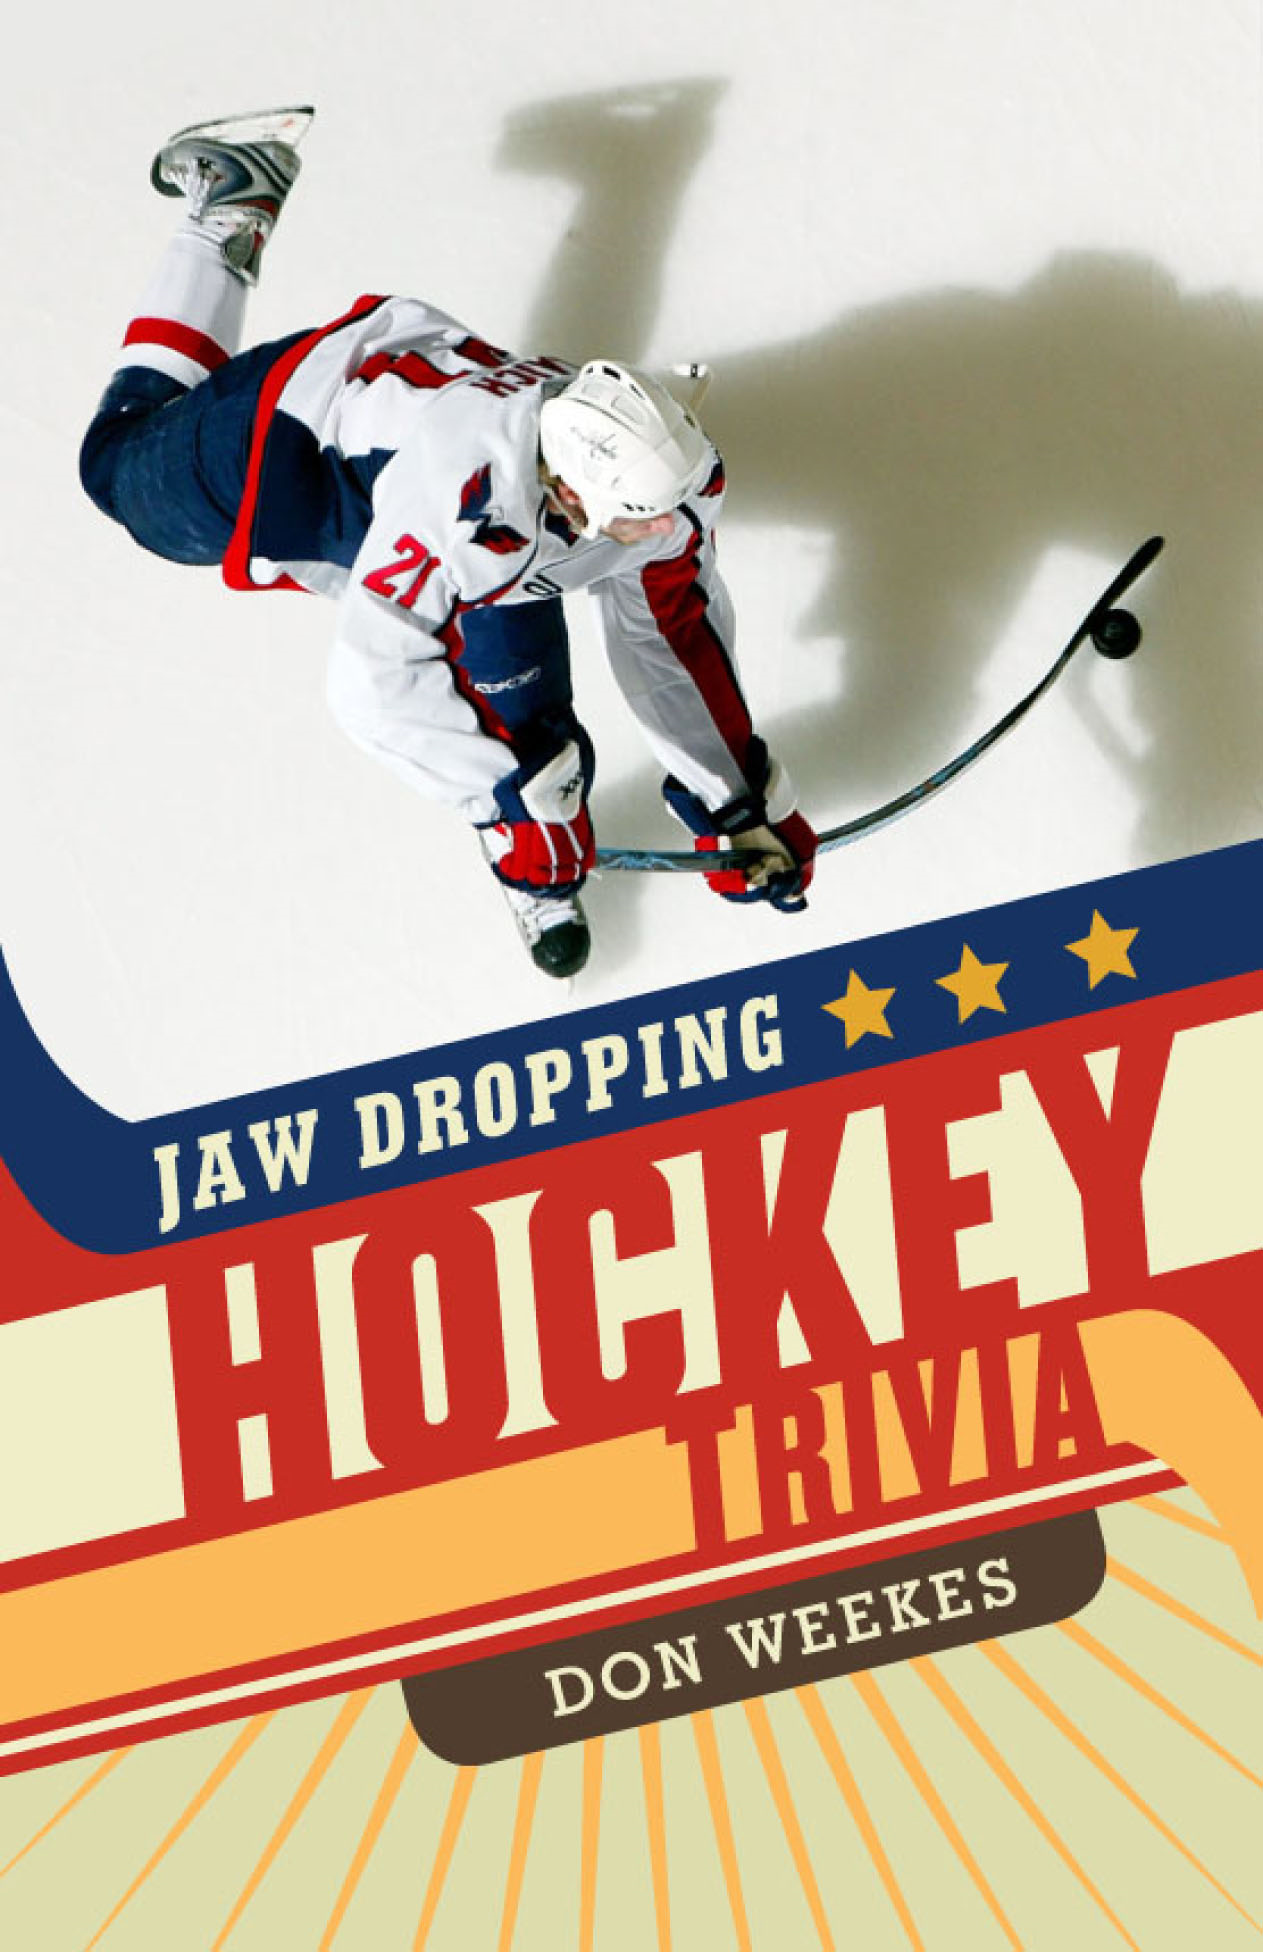 Jaw Dropping Hockey Trivia